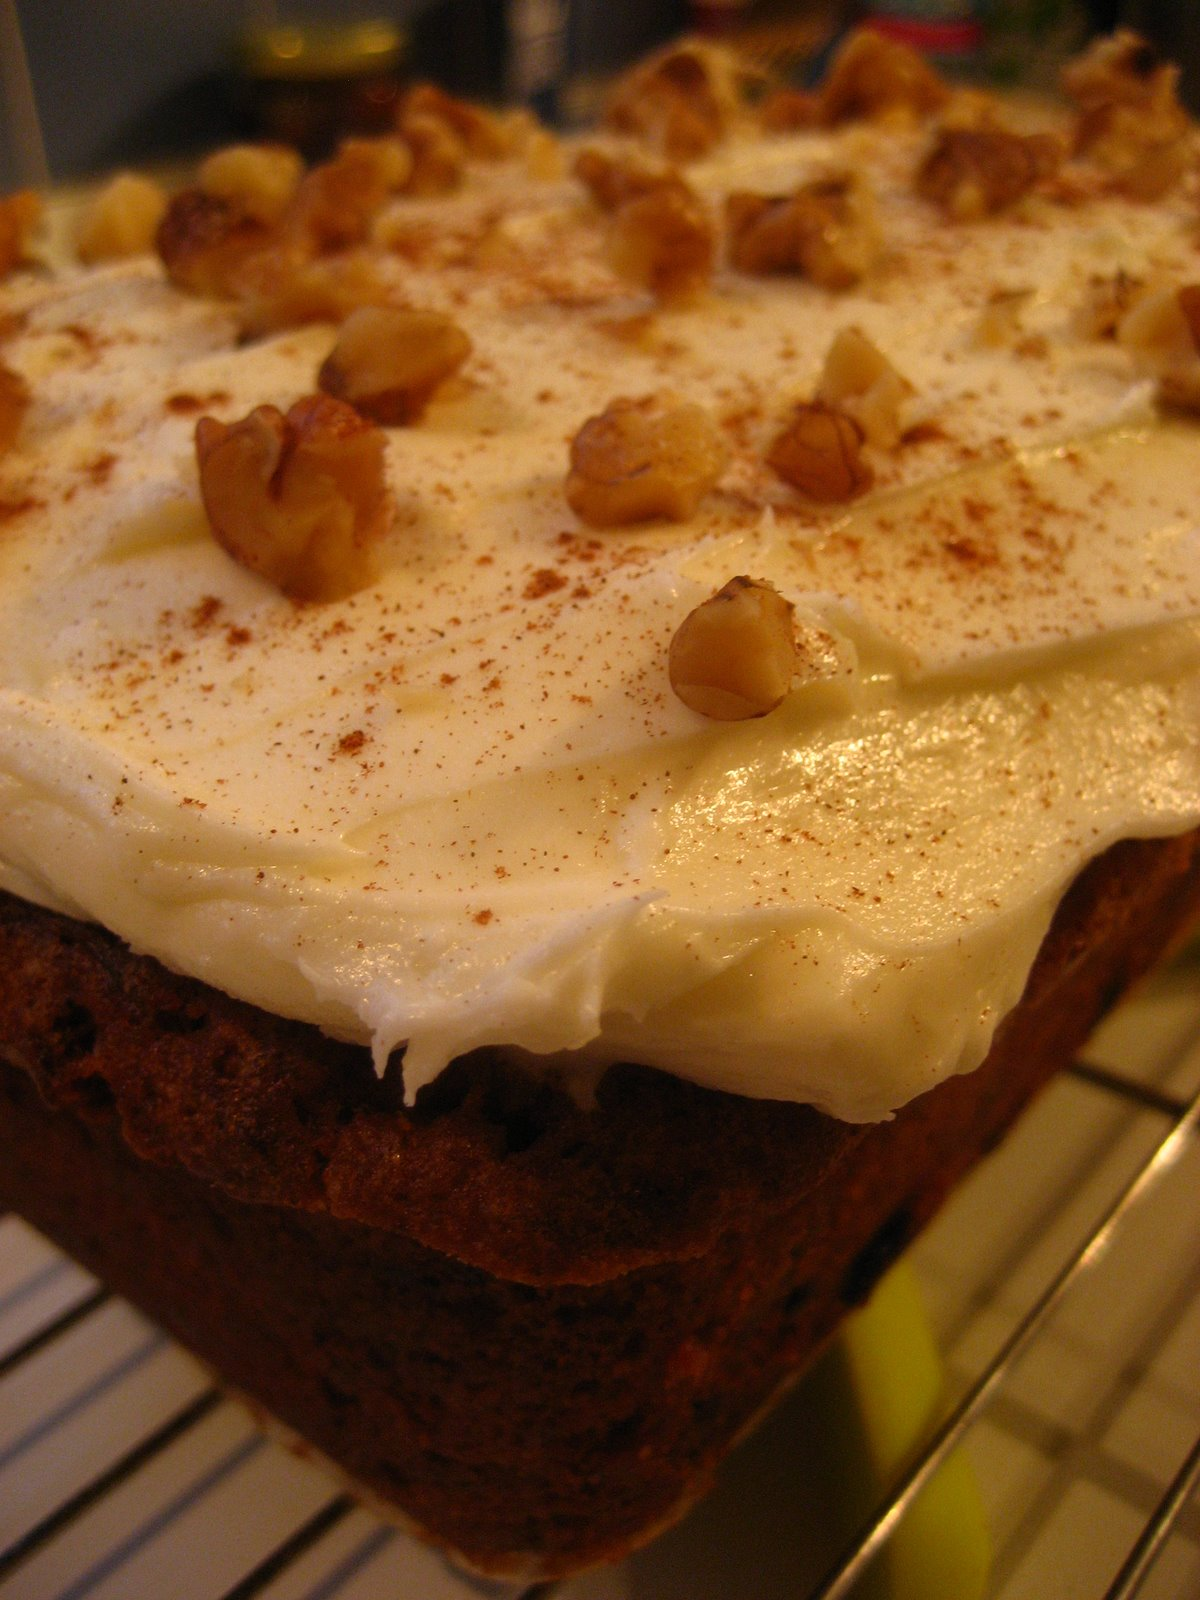 Does Carrot Cake Have Orange Juice In It